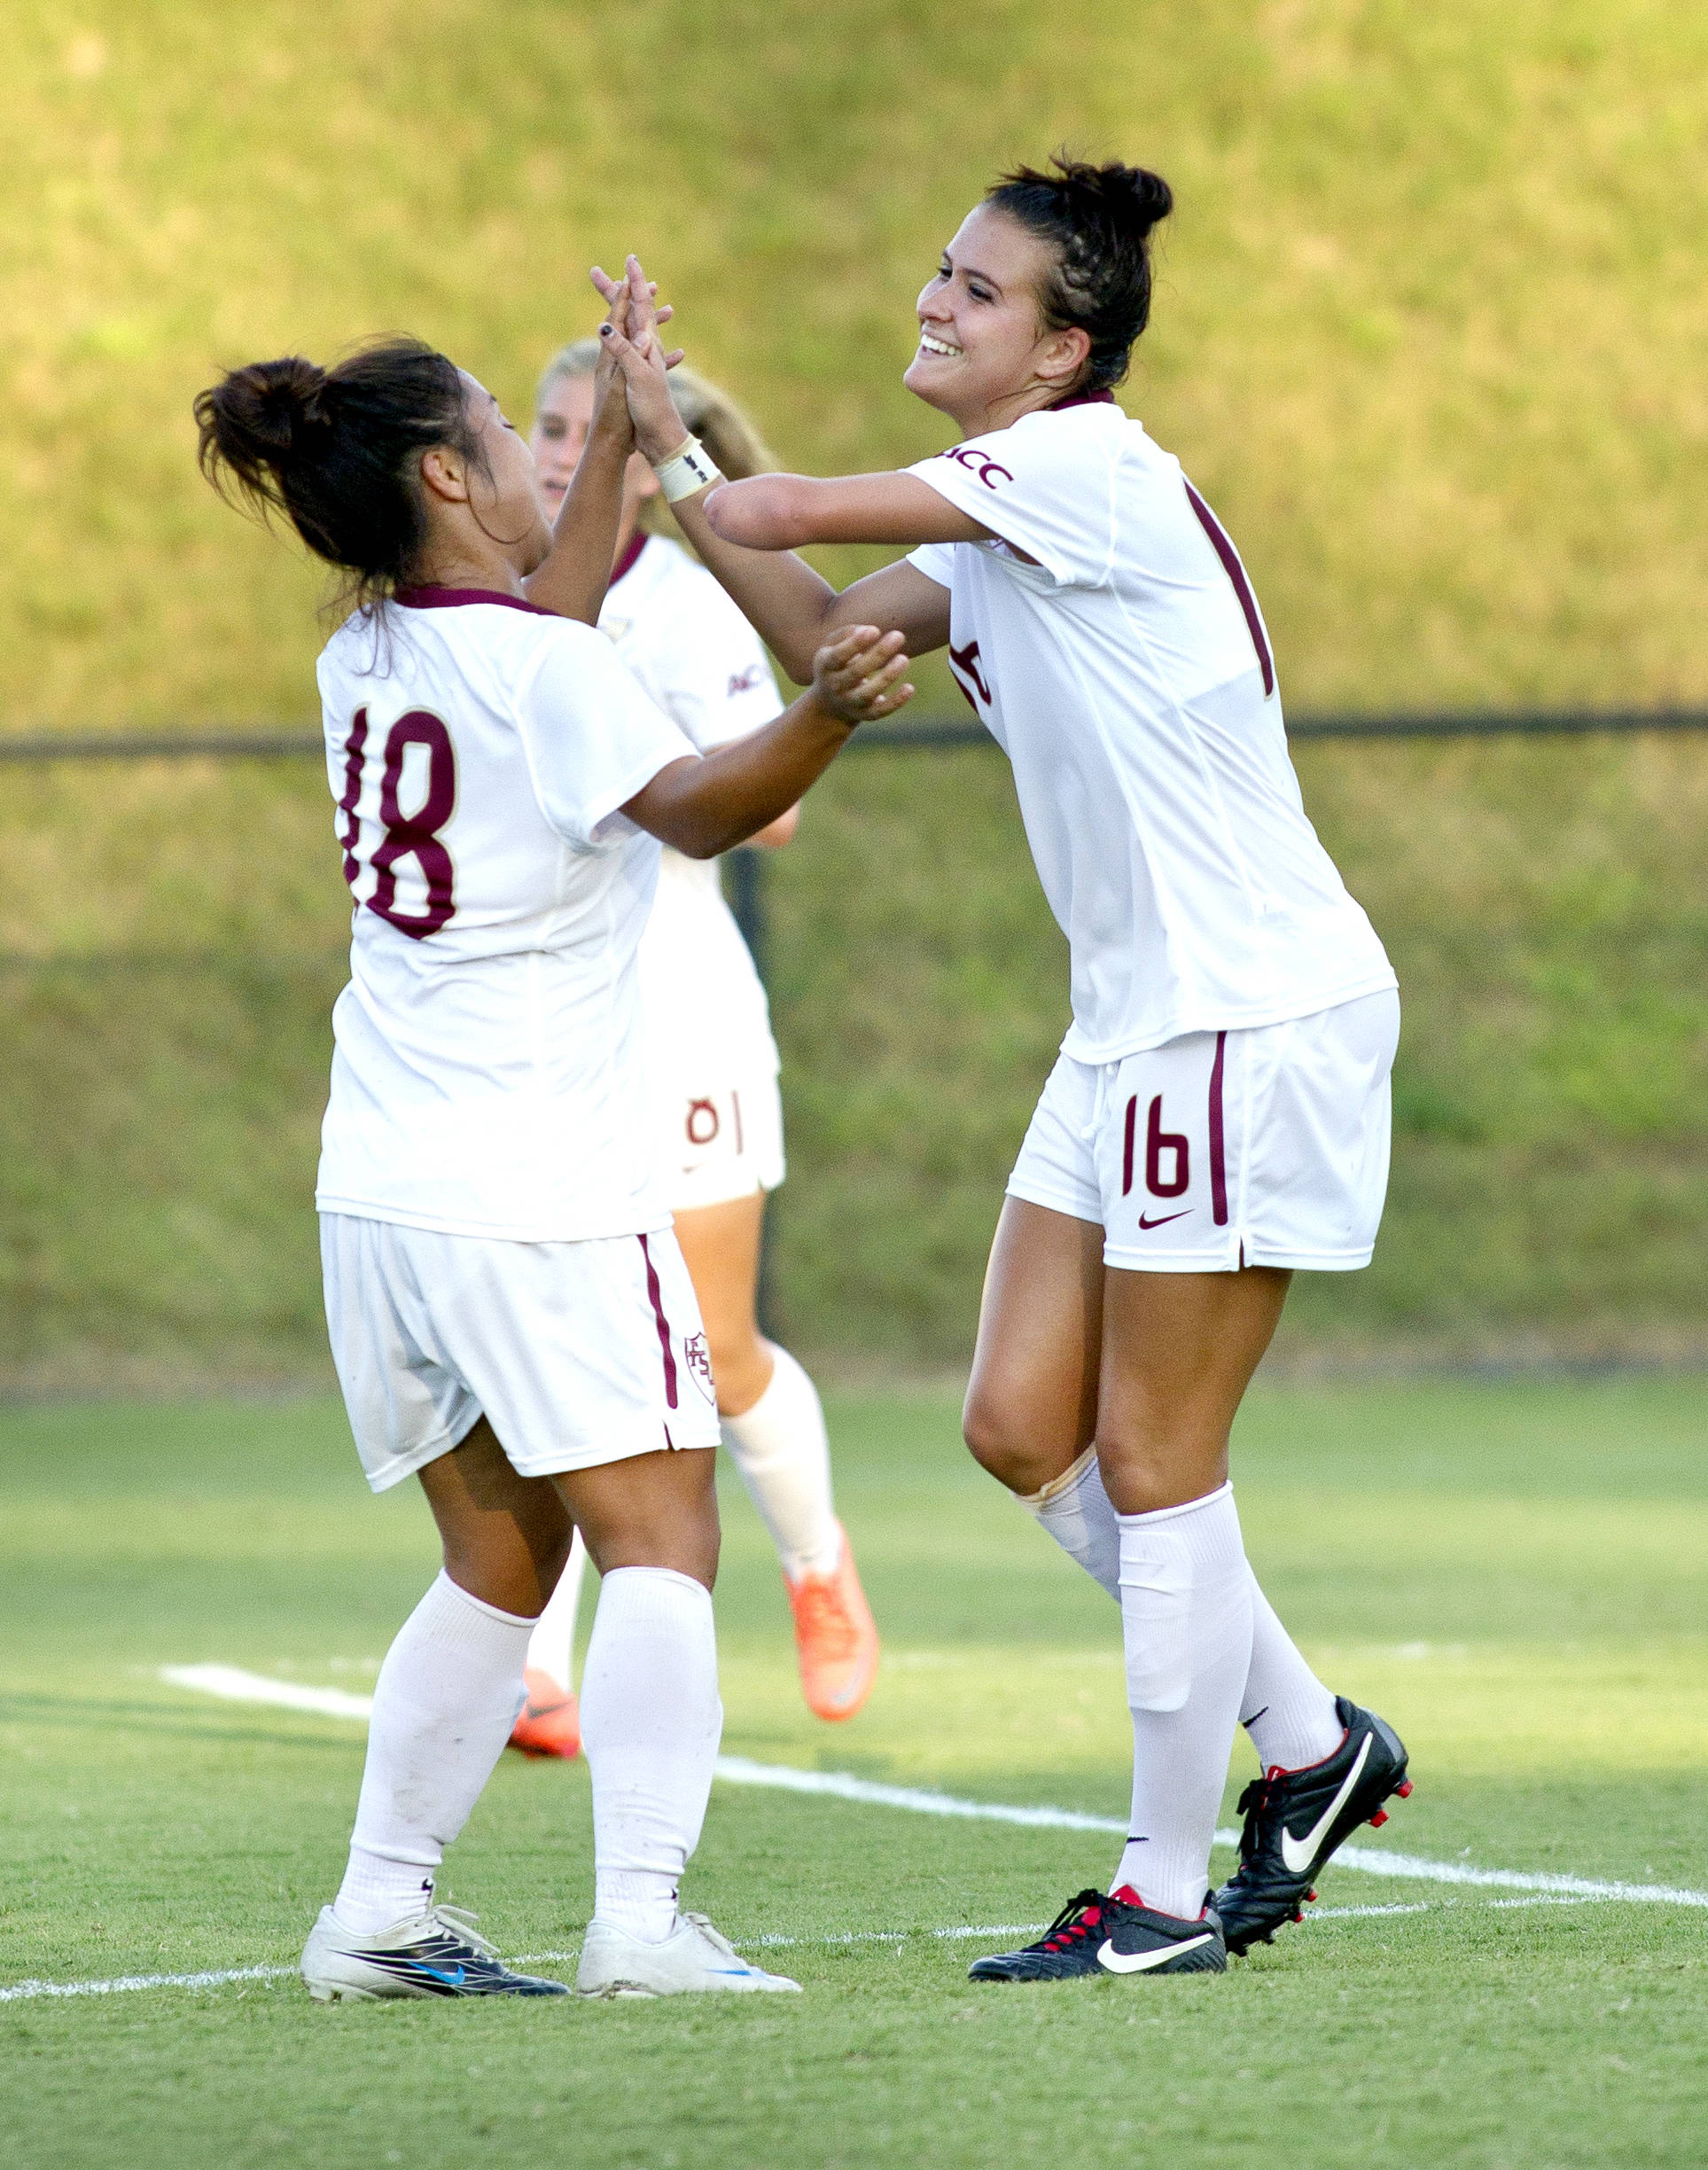 Carson Pickett (16) celebrating scoring her first goal, FSU vs Jackson State, 9/21/12 (Photo by Steve Musco)